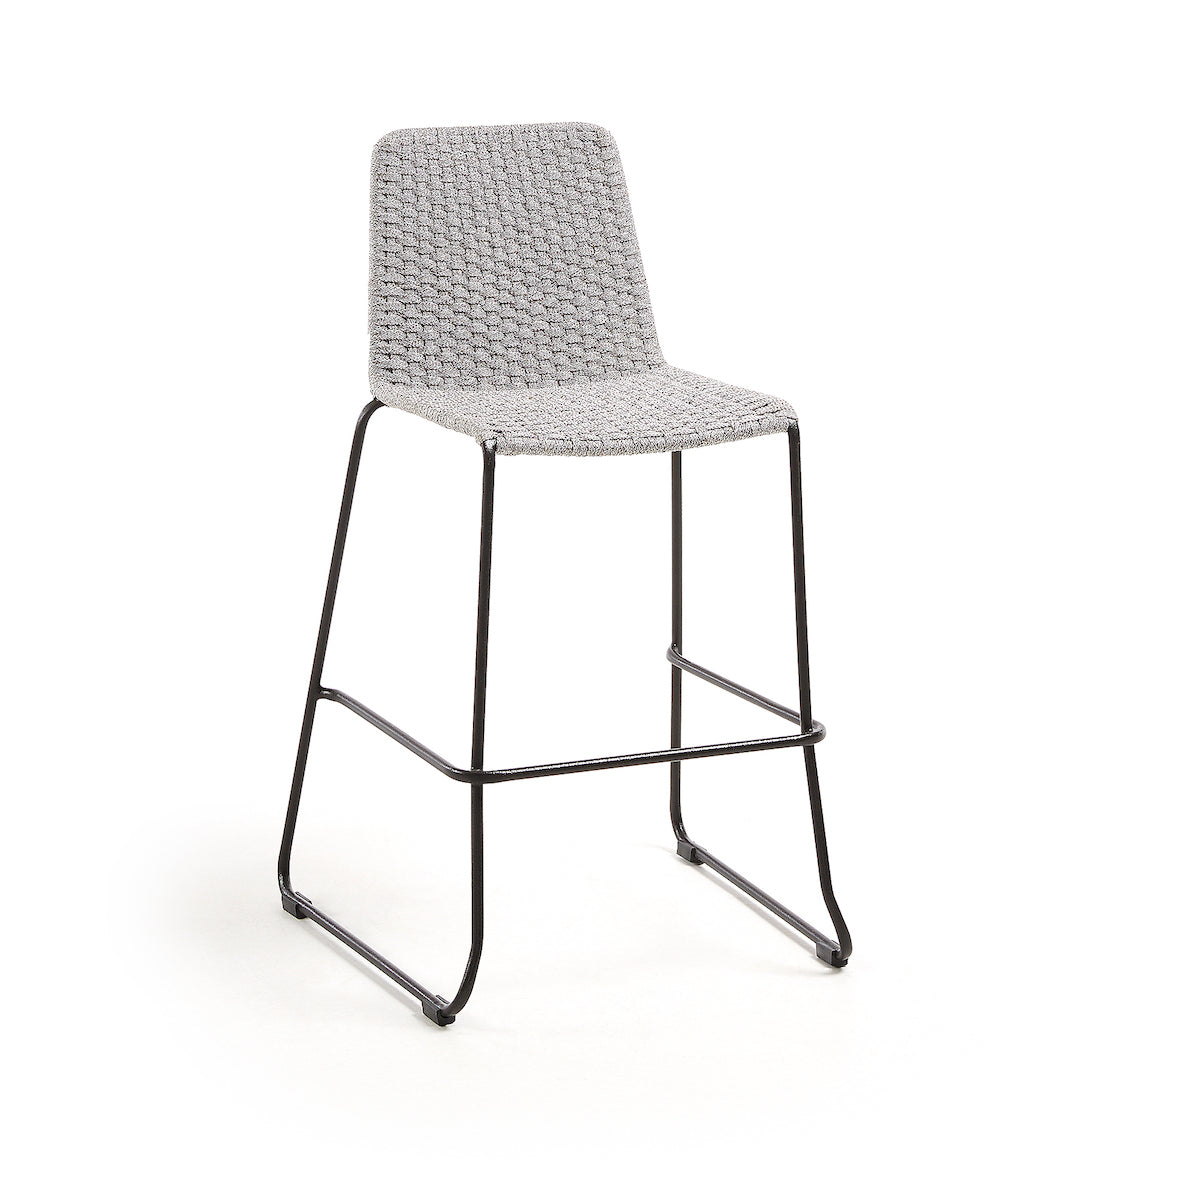 Meggie Patio Bar Height Barstool | Grey